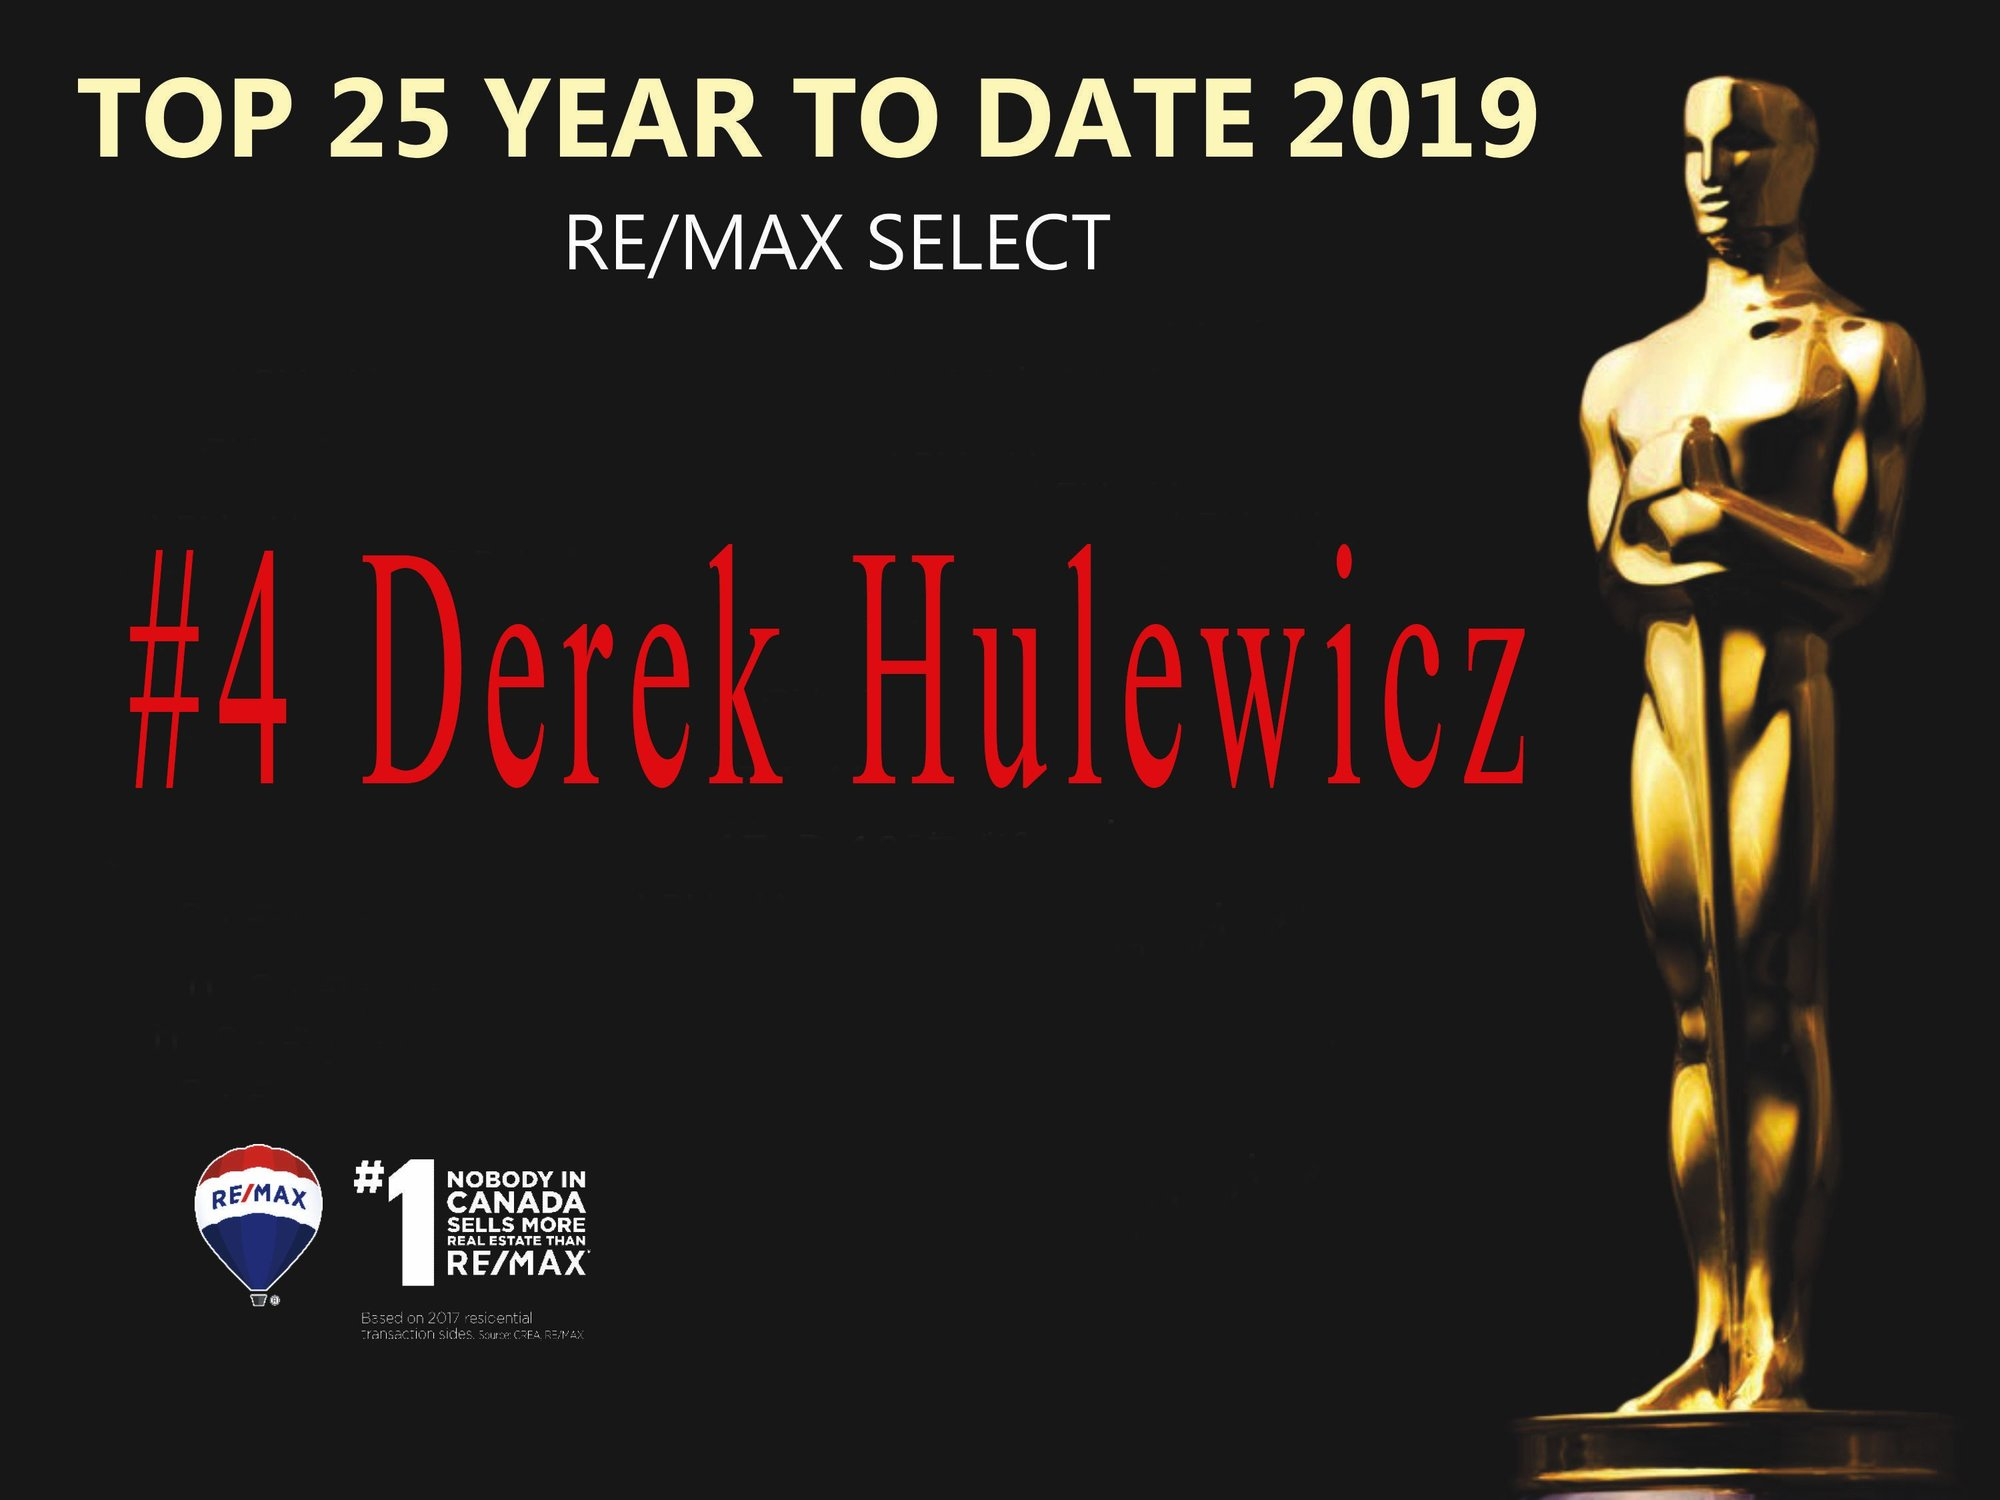 derek hulewicz top remax realtor in 2019